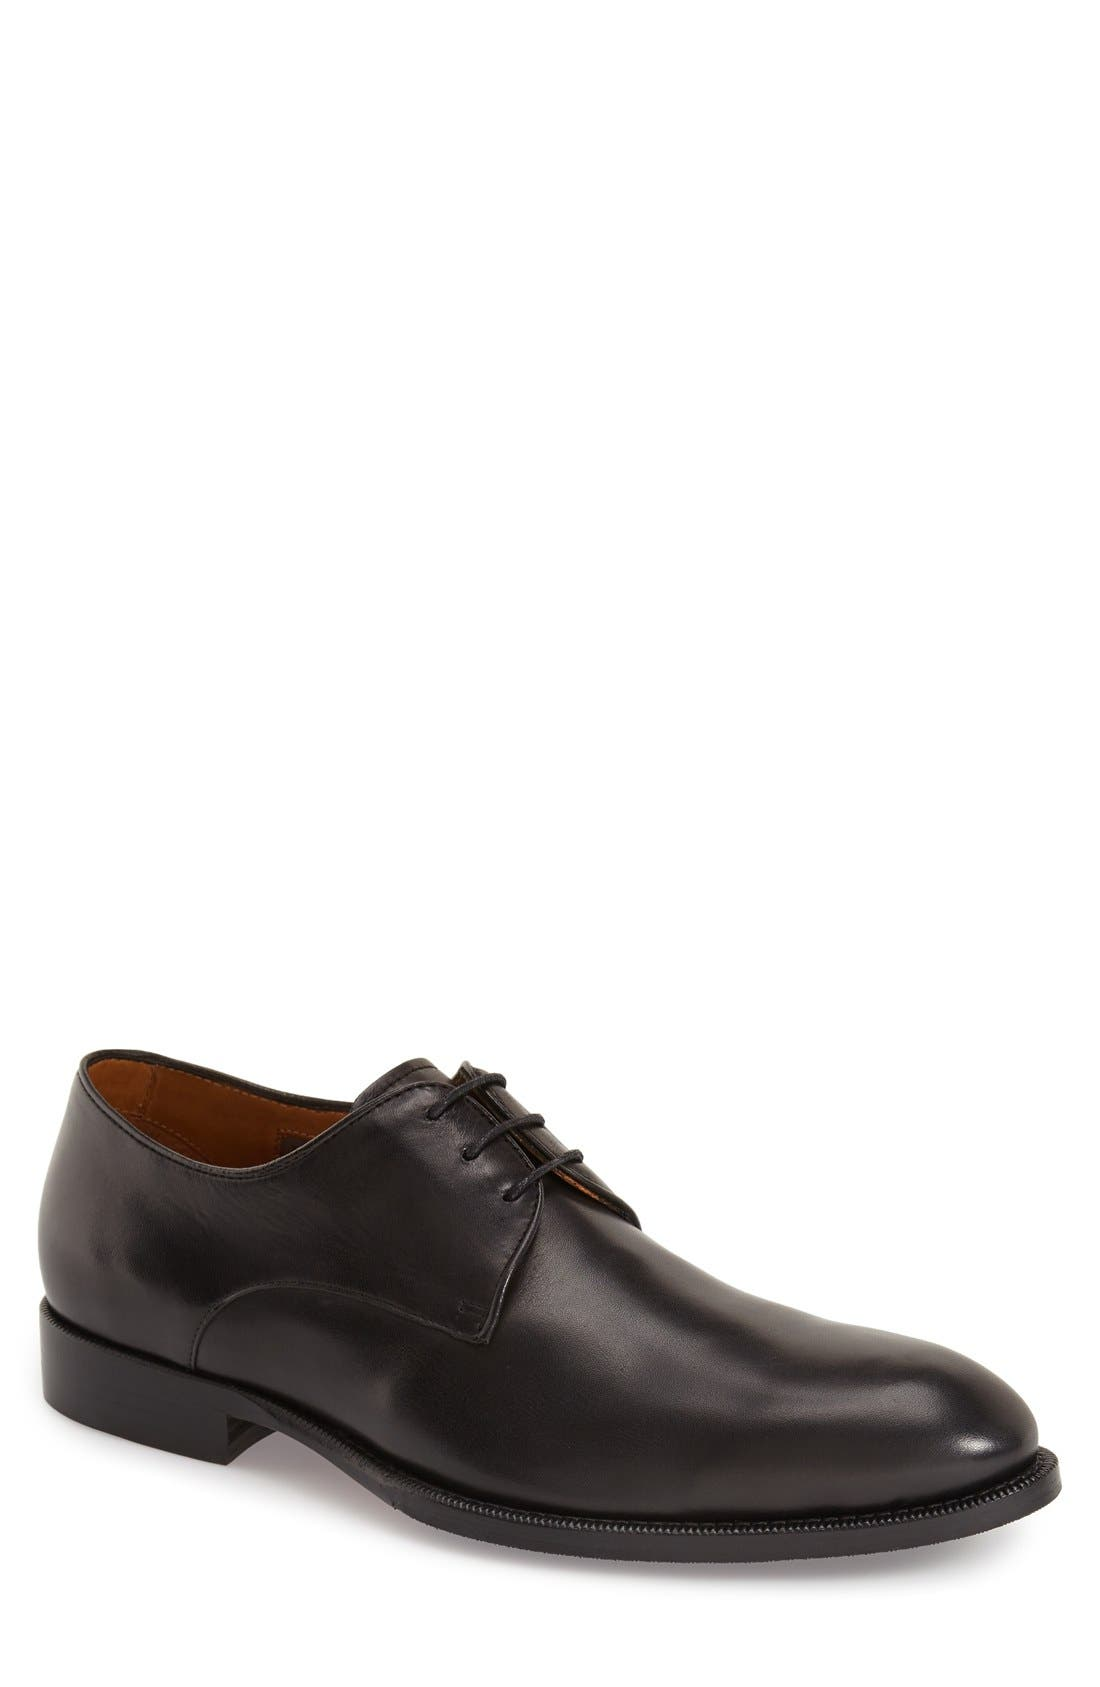 Alternate Image 1 Selected - Vince Camuto 'Brogan' Derby (Men)